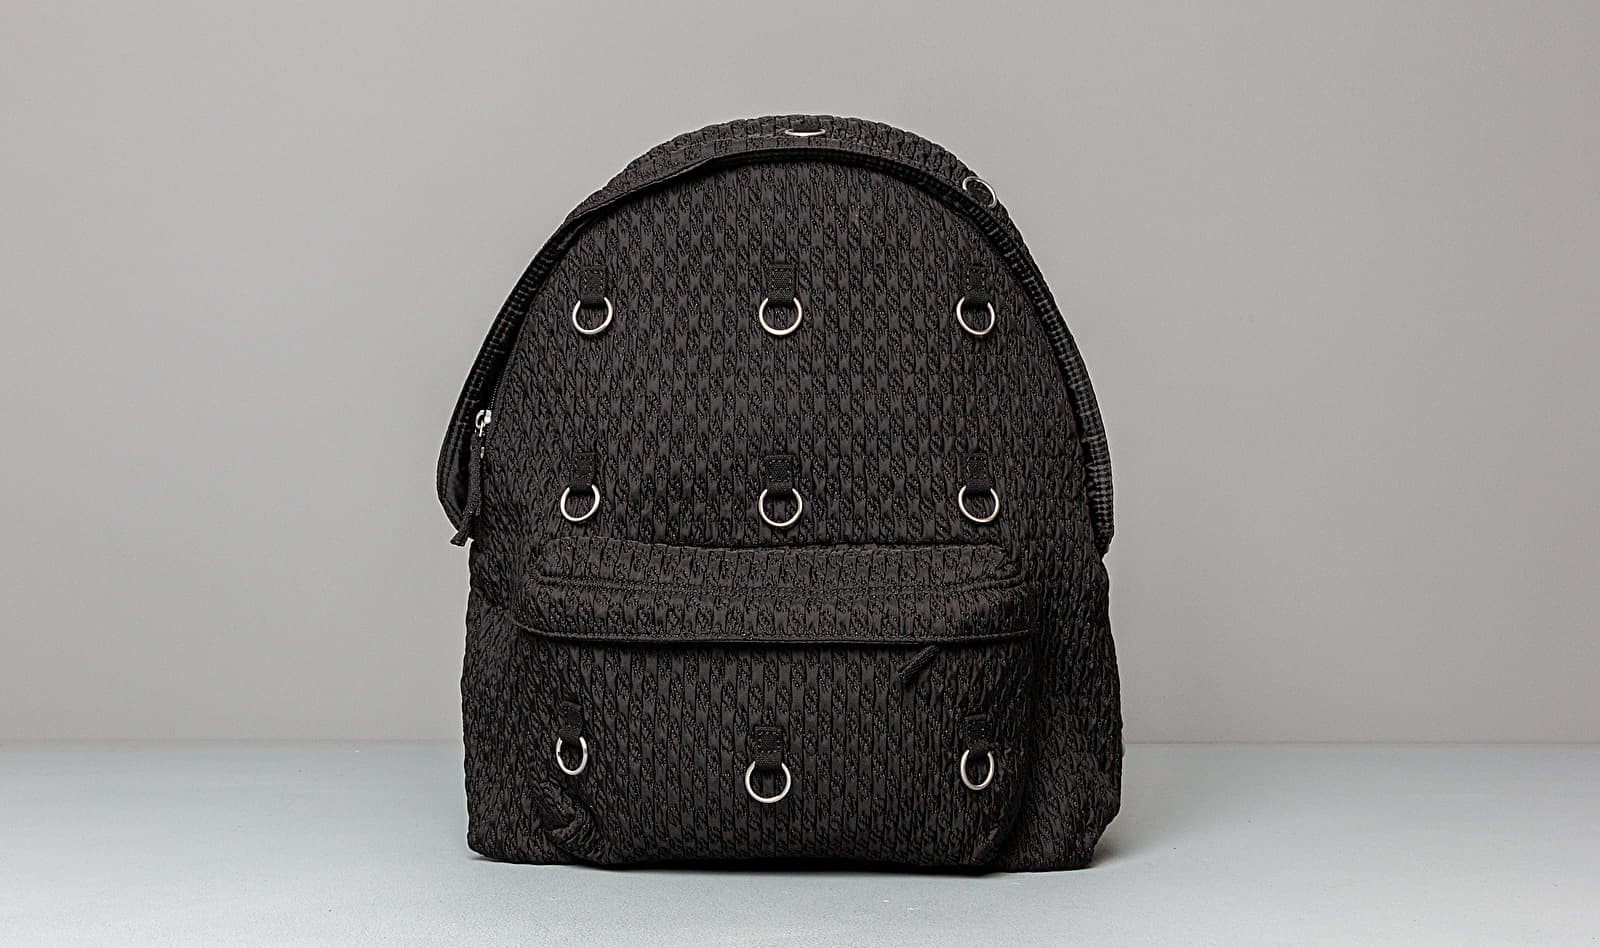 Eastpak x Raf Simons Padded Loop Bag Black Matlas